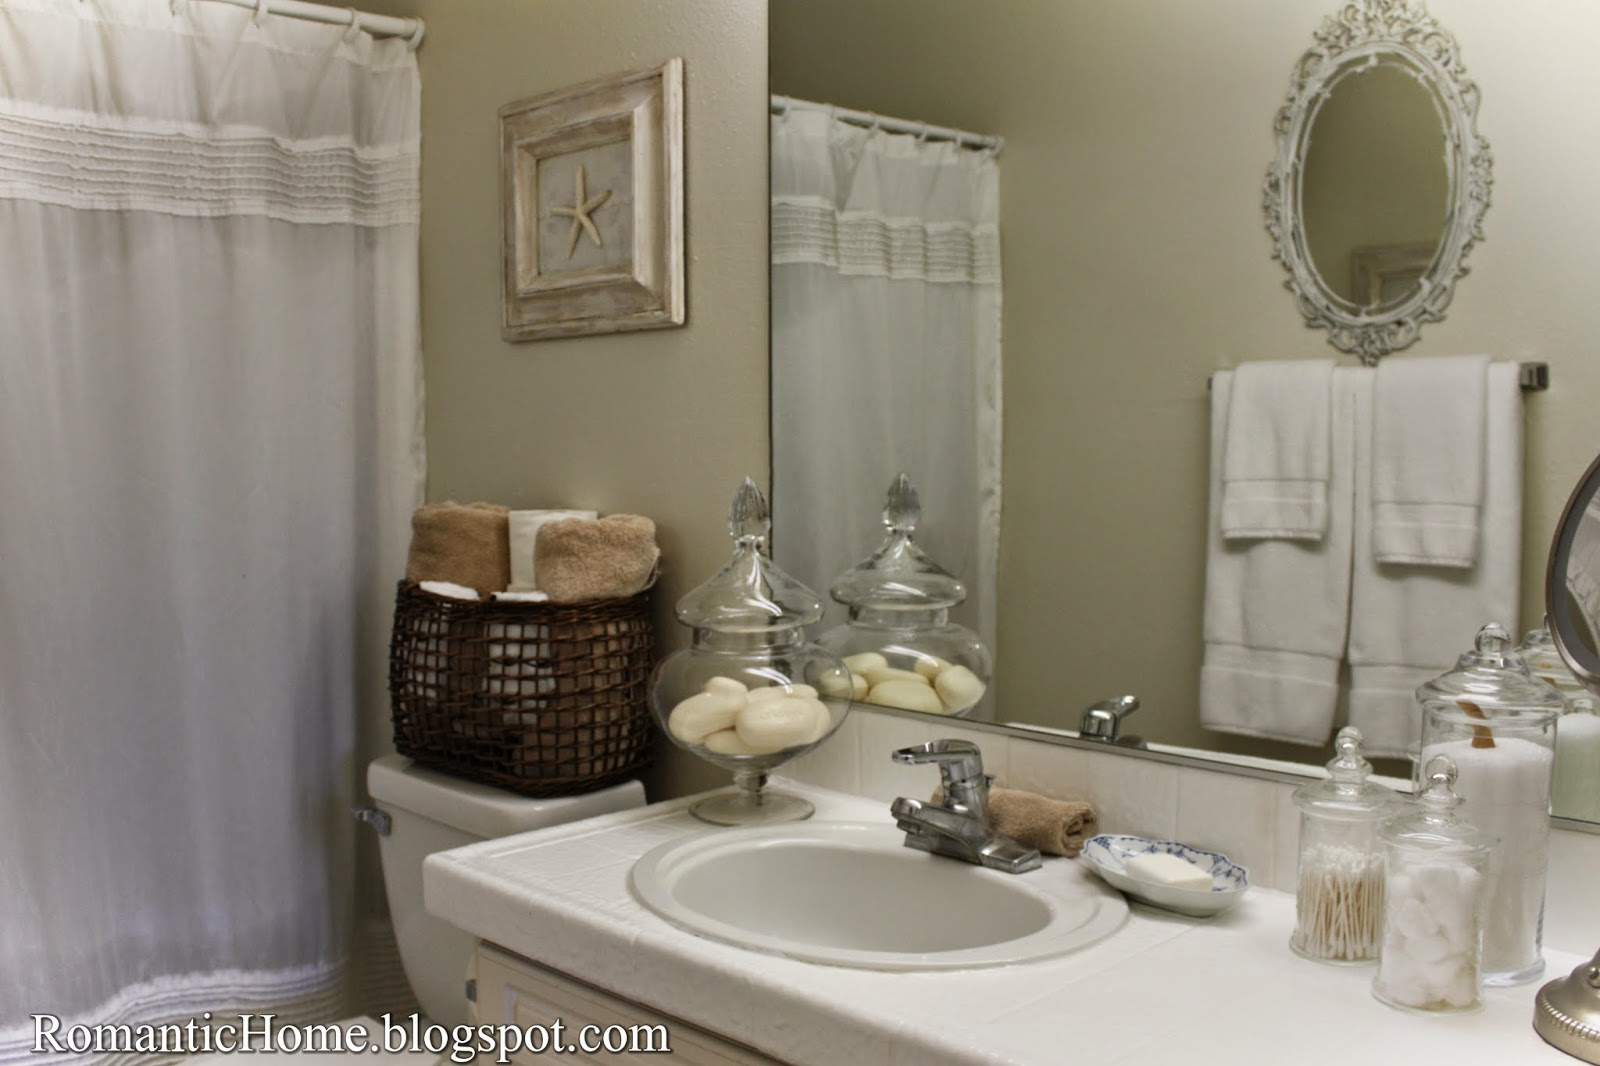 My Romantic Home My Master Bathroom Show And Tell Friday